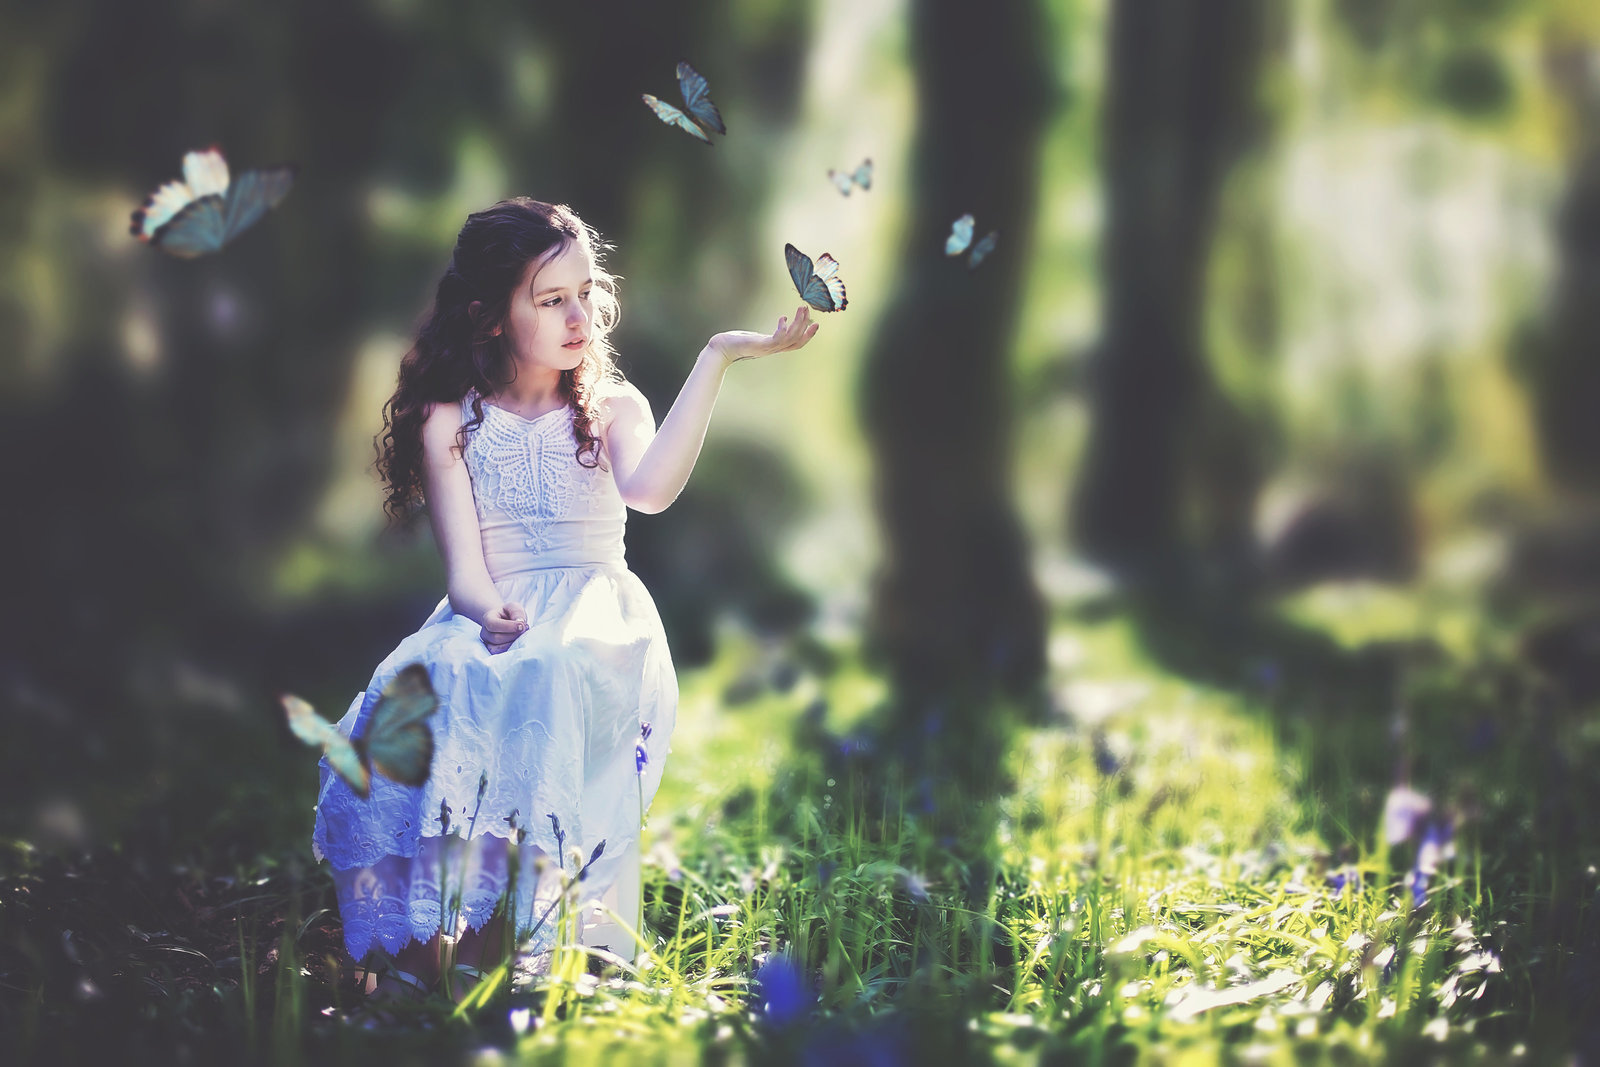 Norwich photographer Jessica Elisze photographs young girl with butterflies in the woods in Norfolk.